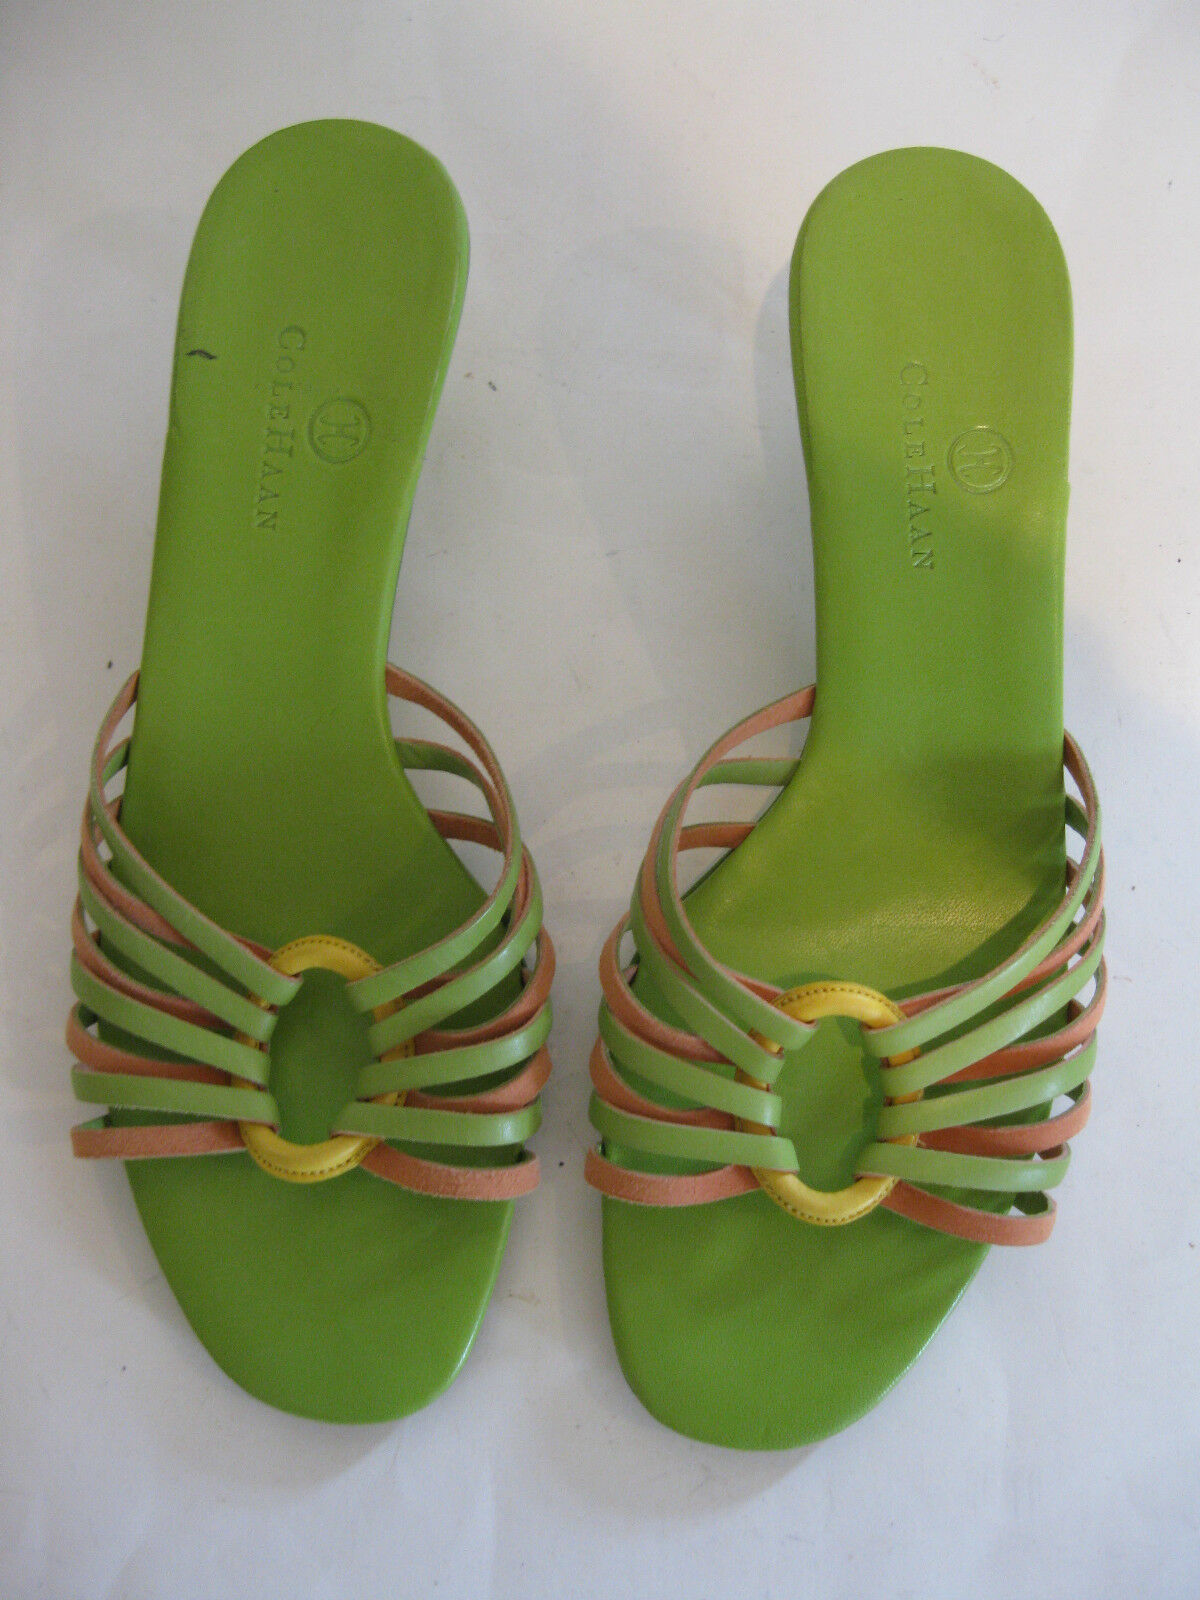 COLE HAAN MULTIcolorD LEATHER SANDALS WITH FRONT DESIGN SIZE 8B